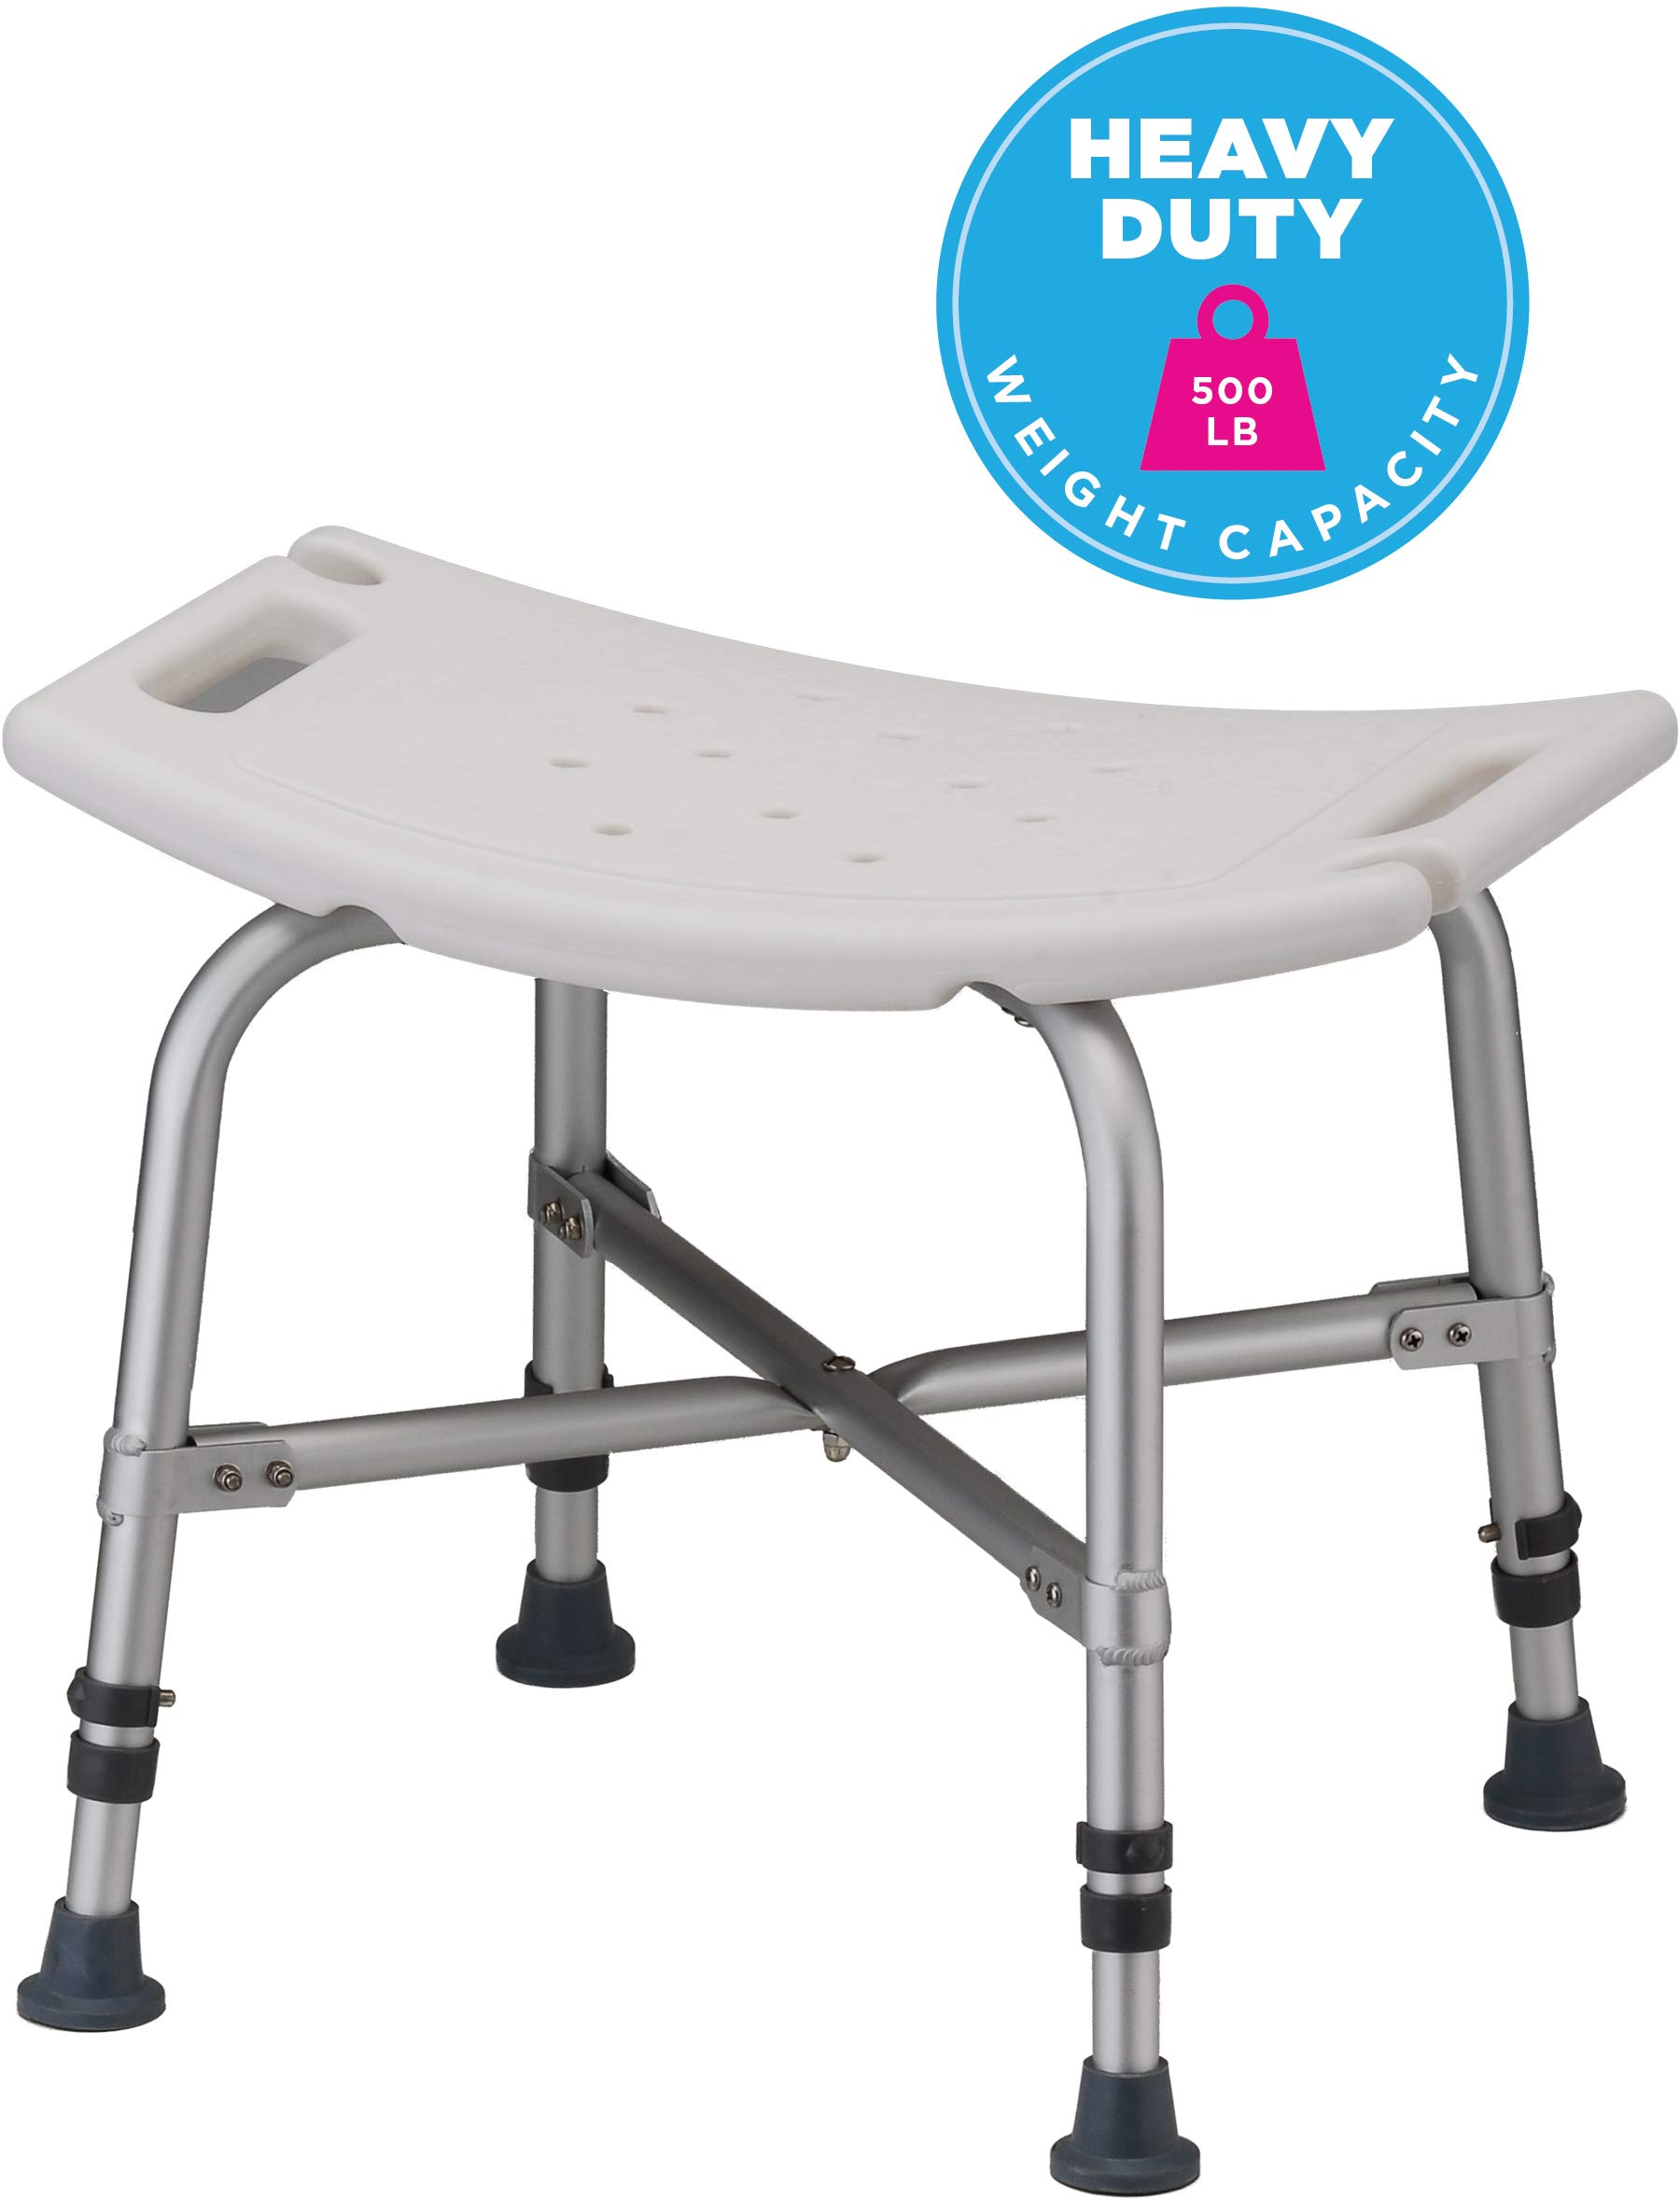 NOVA Heavy Duty Shower & Bath Chair, 500 lb. Weight Capacity, Quick & Easy Tools Free Assembly, Lightweight & Seat Height Adjustable, Great for Travel by NOVA Medical Products